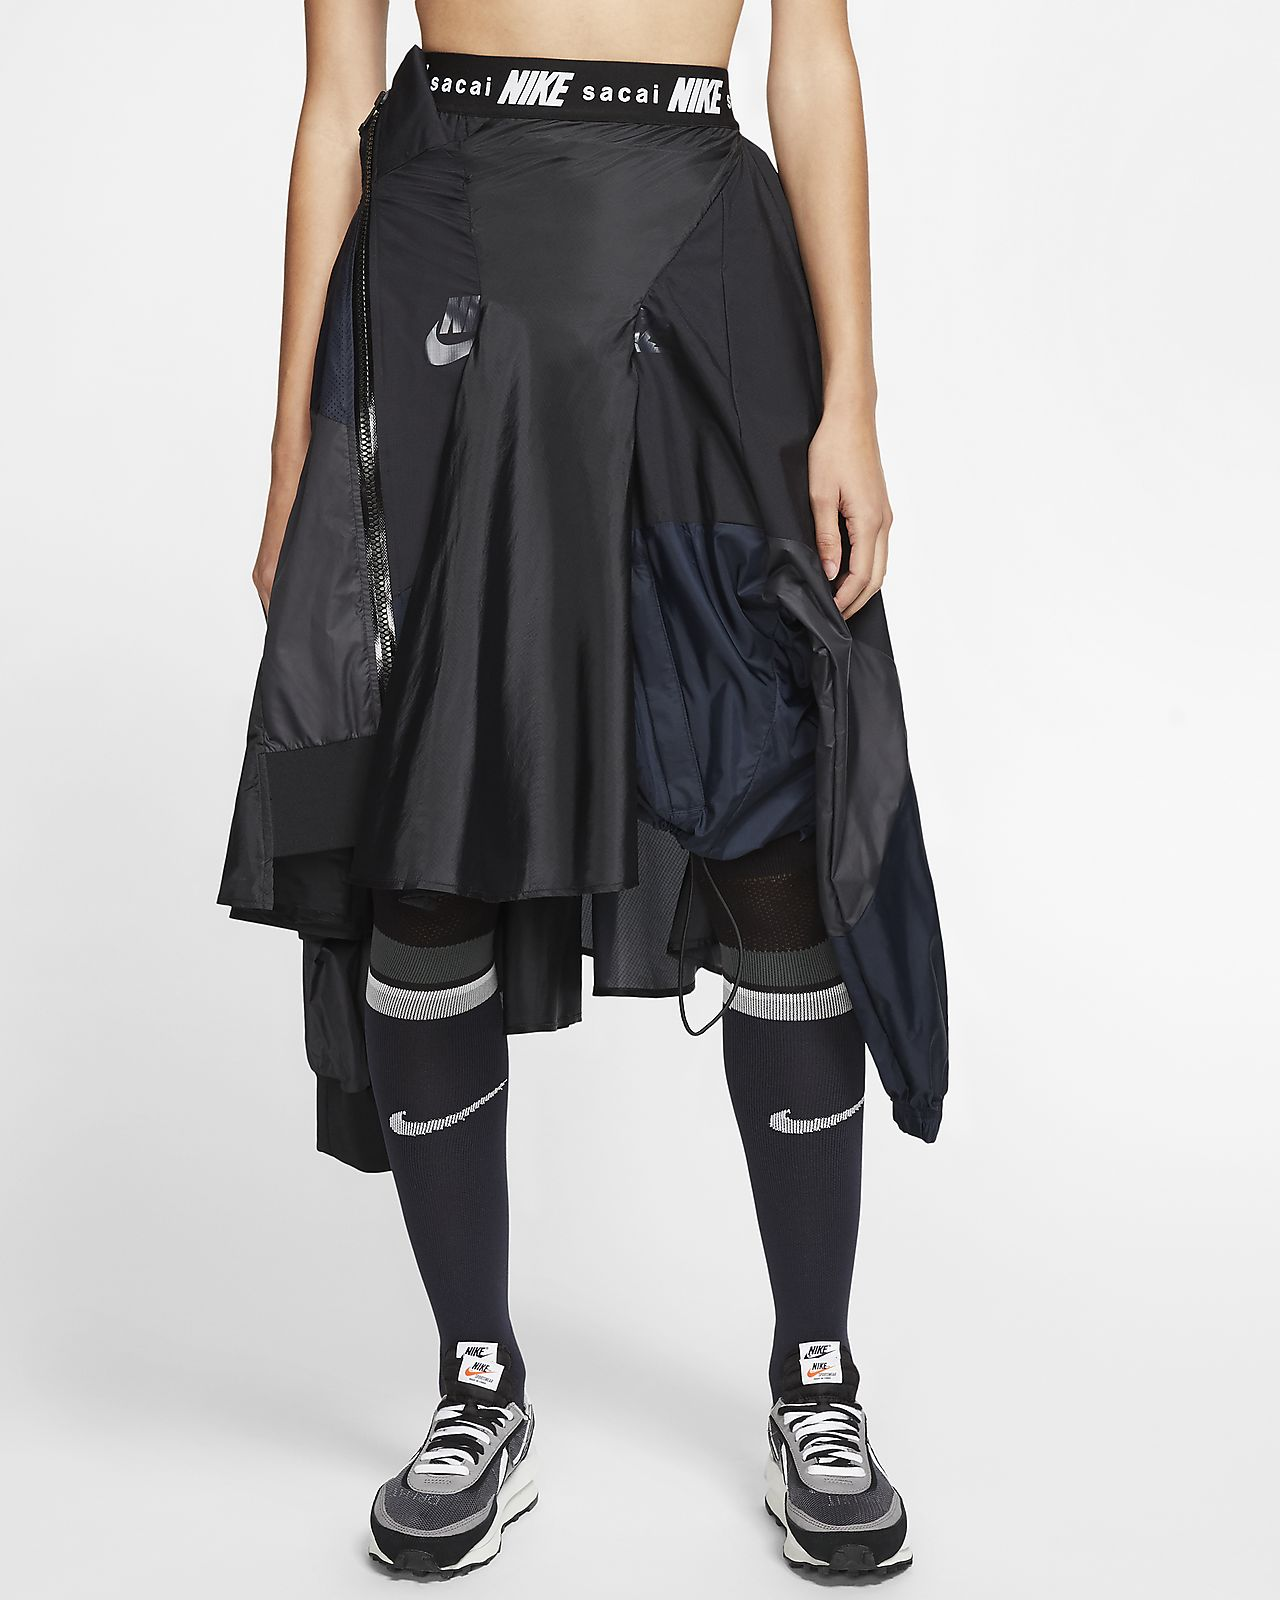 Nike x Sacai Women's Skirt